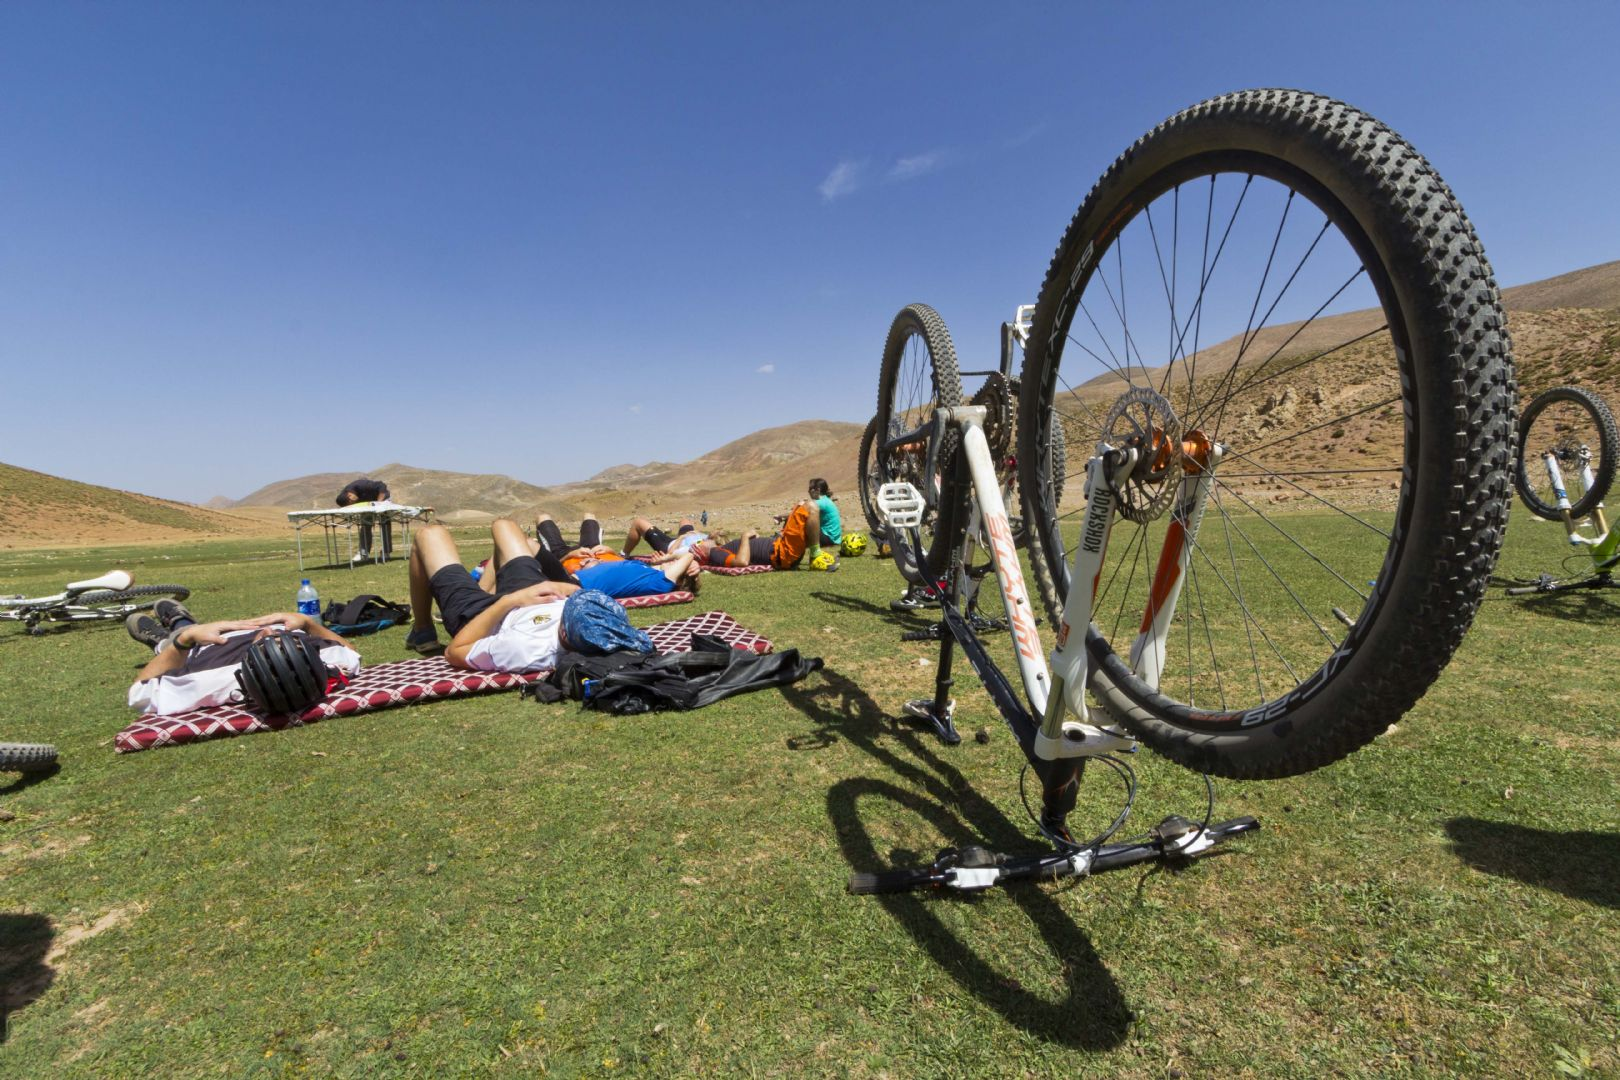 _Customer_104484_20762.jpg - Morocco - High Atlas Traverse - Mountain Biking